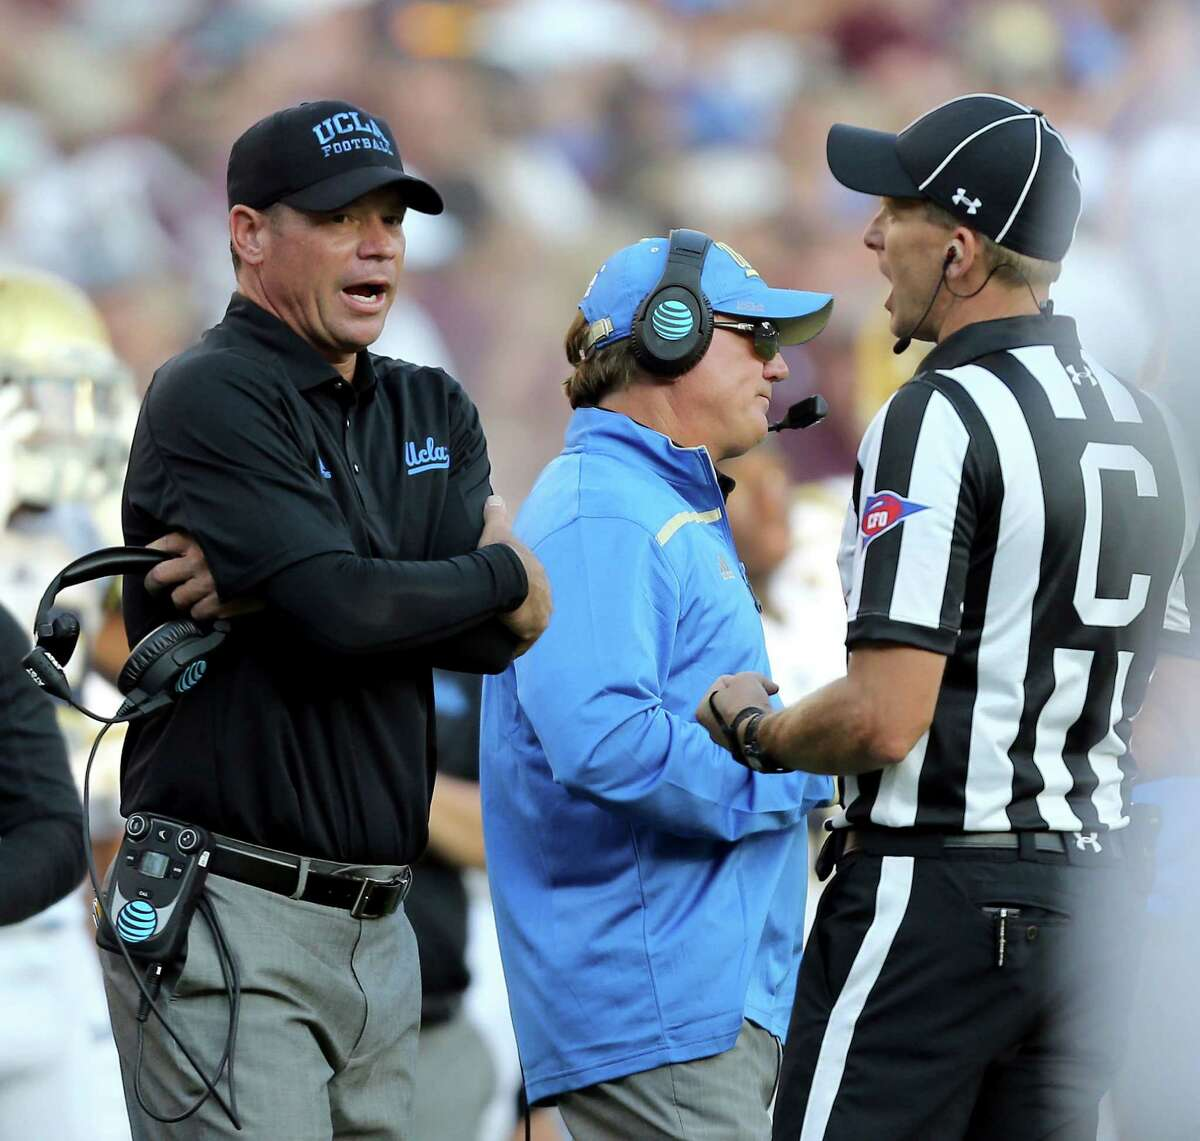 UCLA coach Jim Mora discusses a call with an official during overtime of an NCAA college football game against Texas A&M on Saturday, Sept. 3, 2016, in College Station, Texas. Texas A&M won 31-24. (AP Photo/Sam Craft)